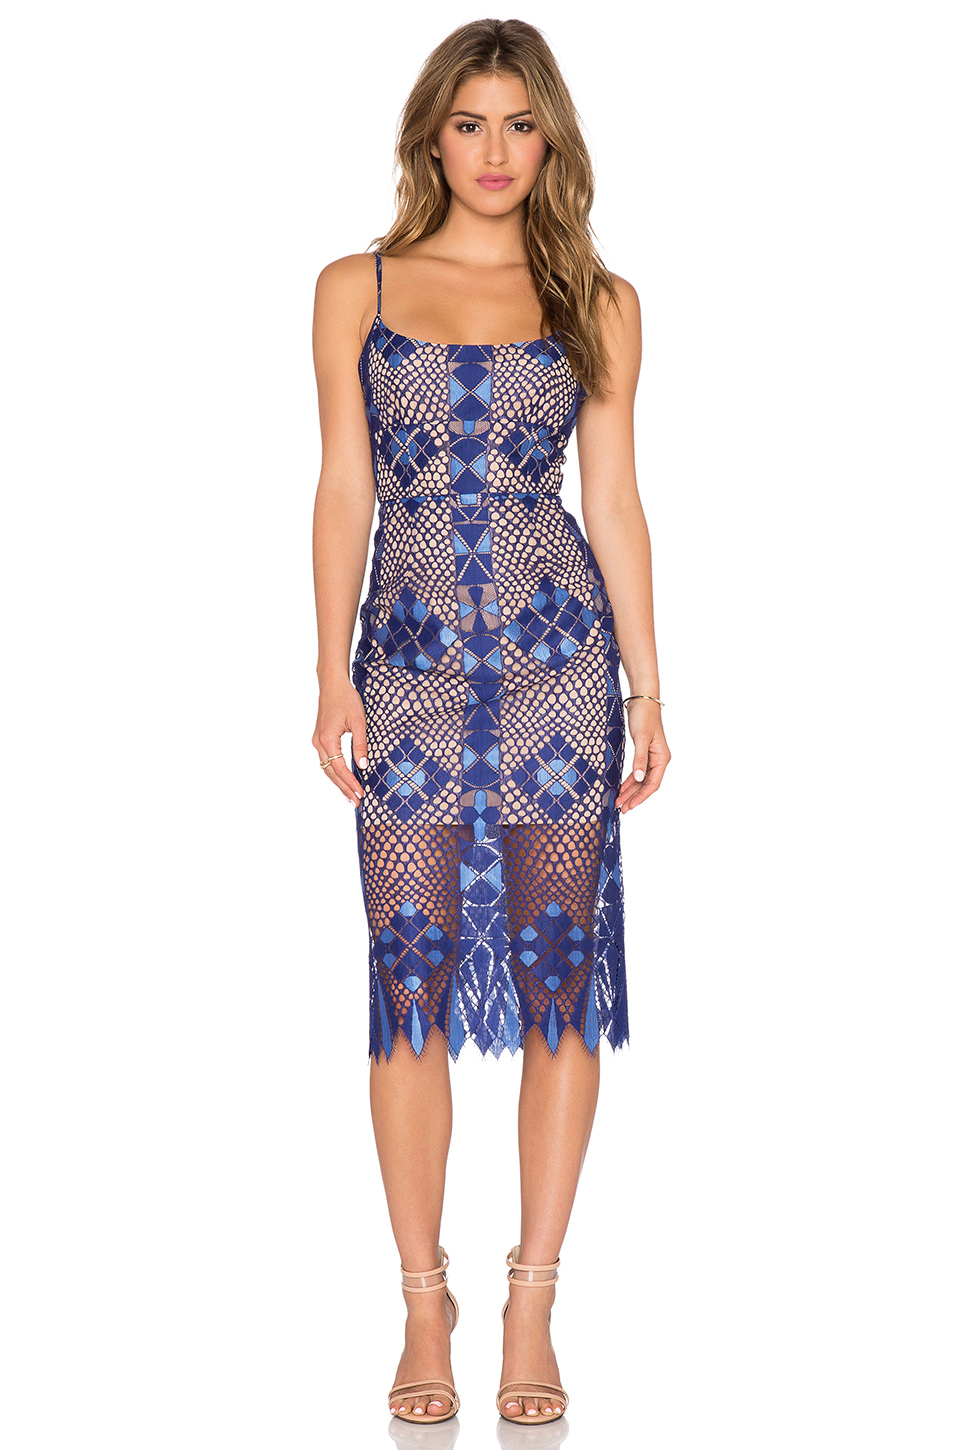 Bcbgmaxazria Sheer Lace Dress in Blue | Lyst